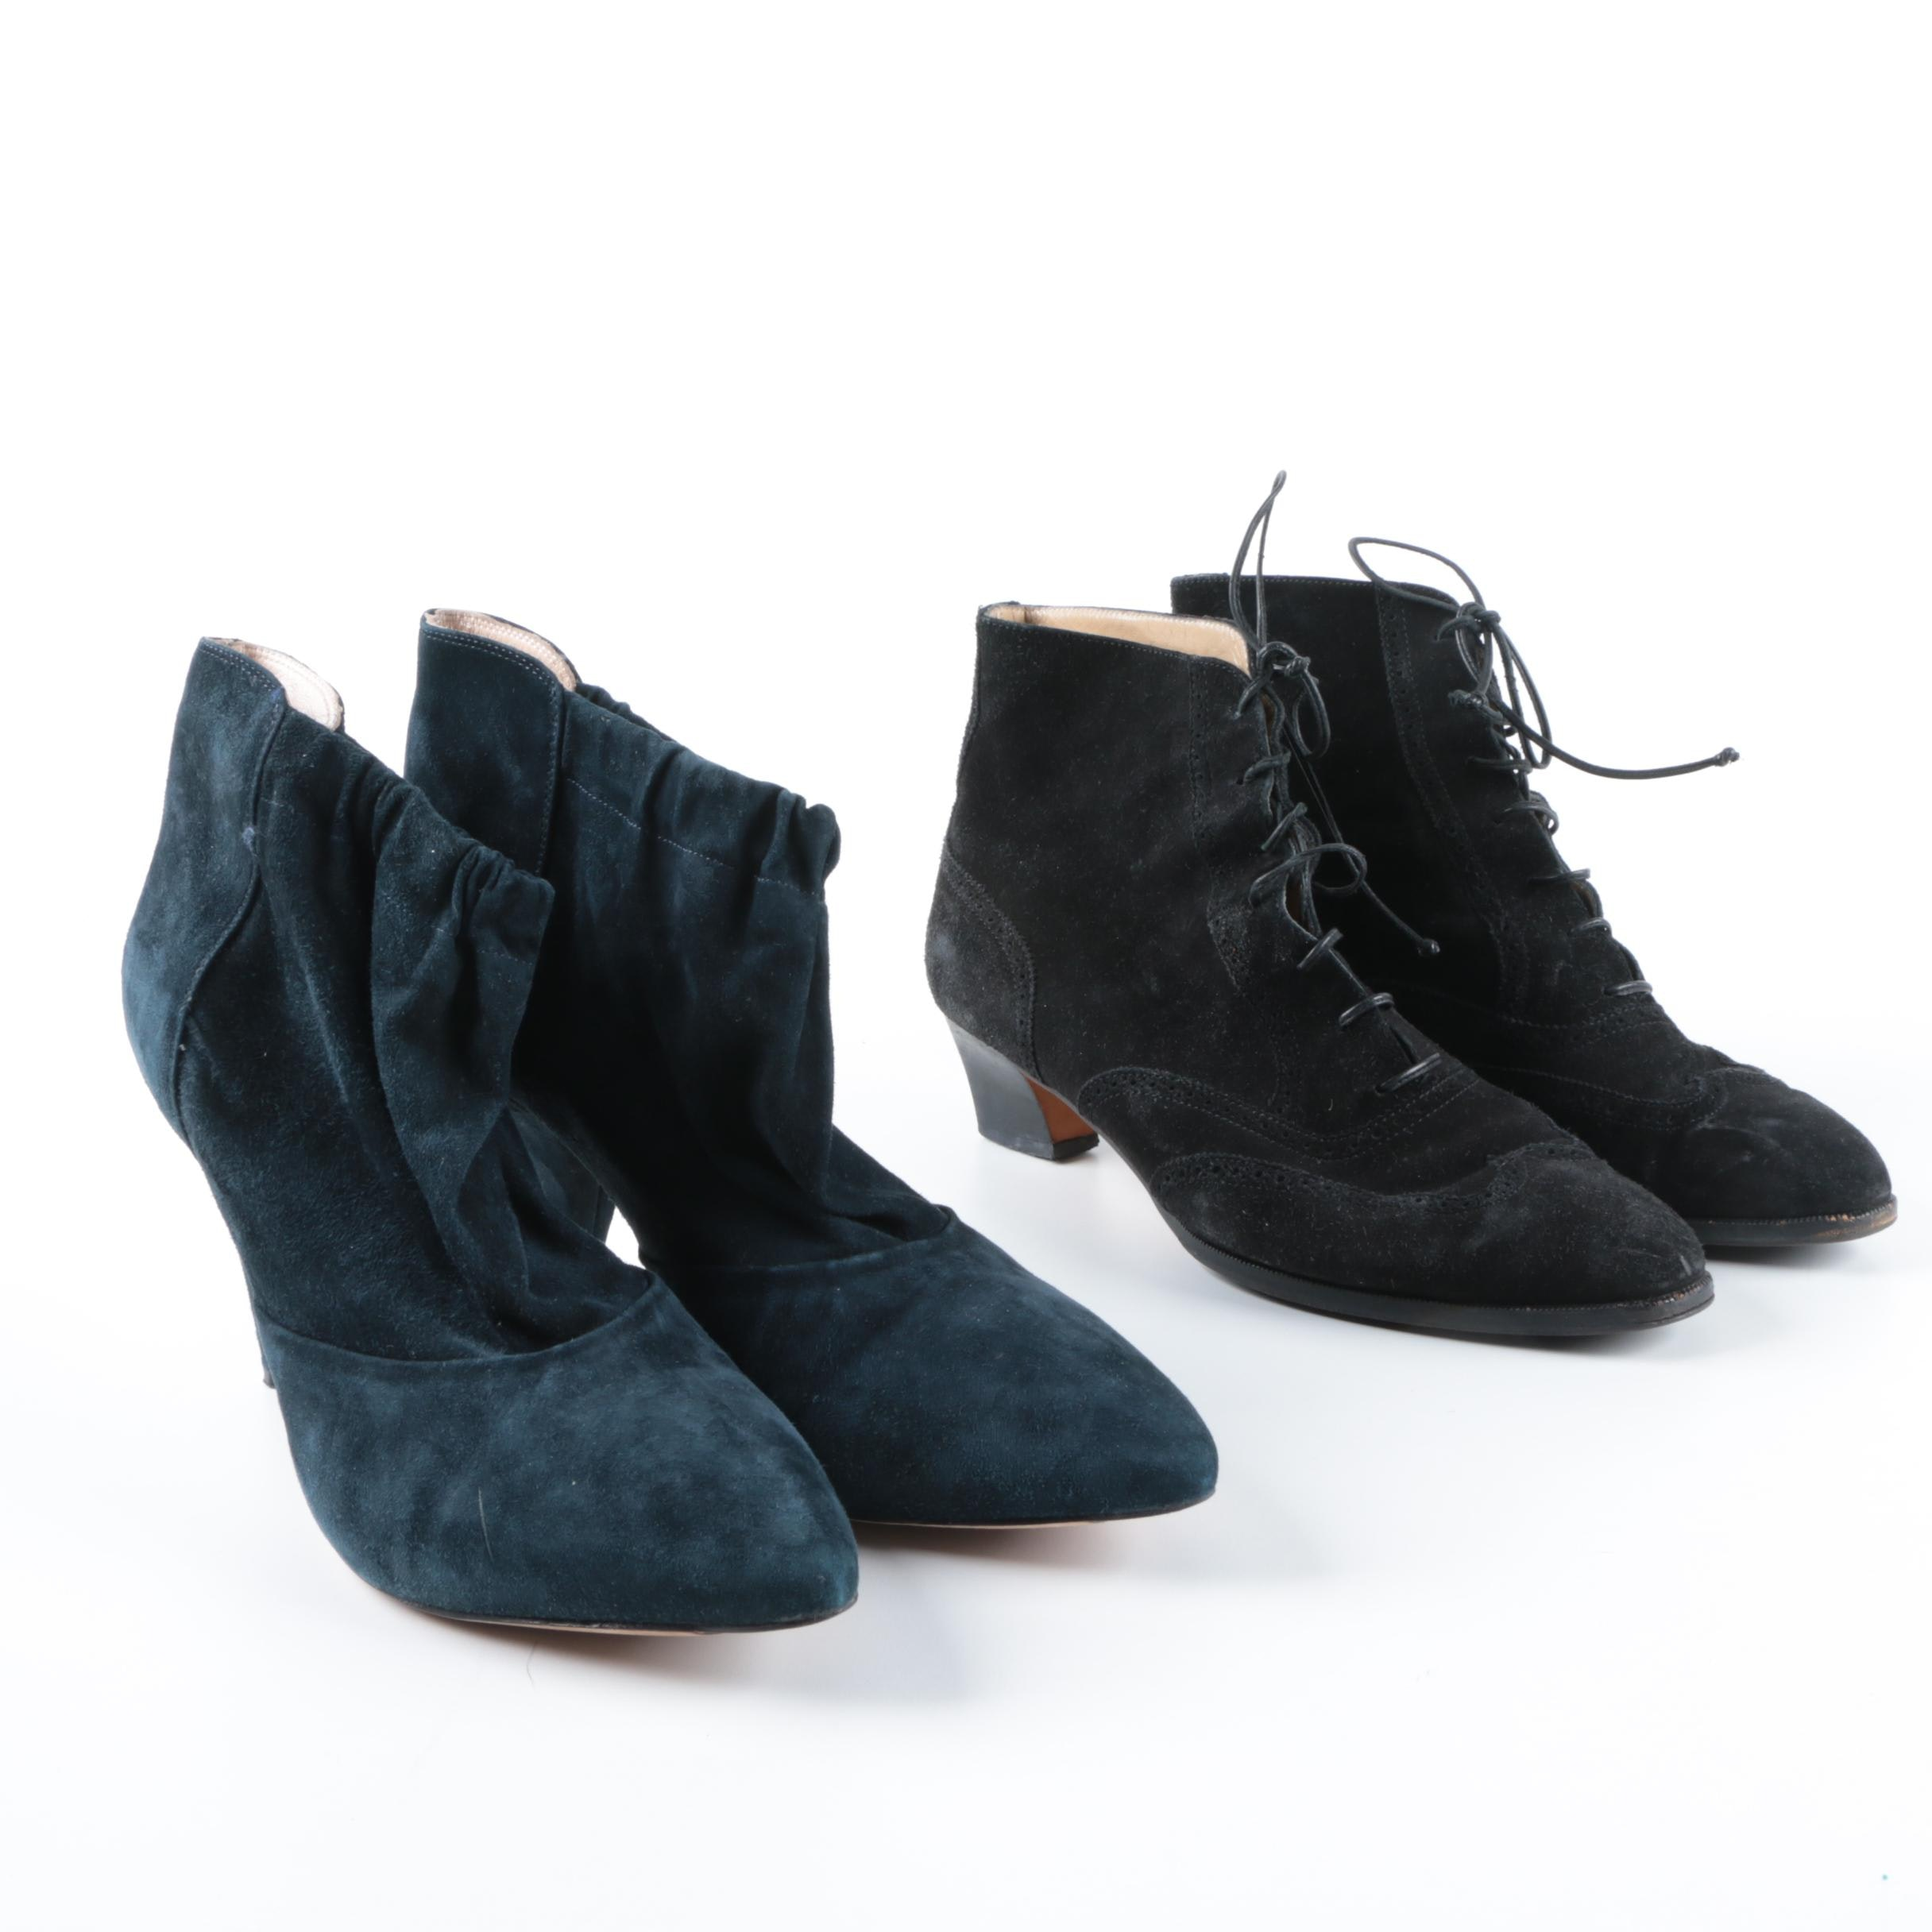 Suede Ankle Booties Including Salvatore Ferragamo and Loeffler Randall